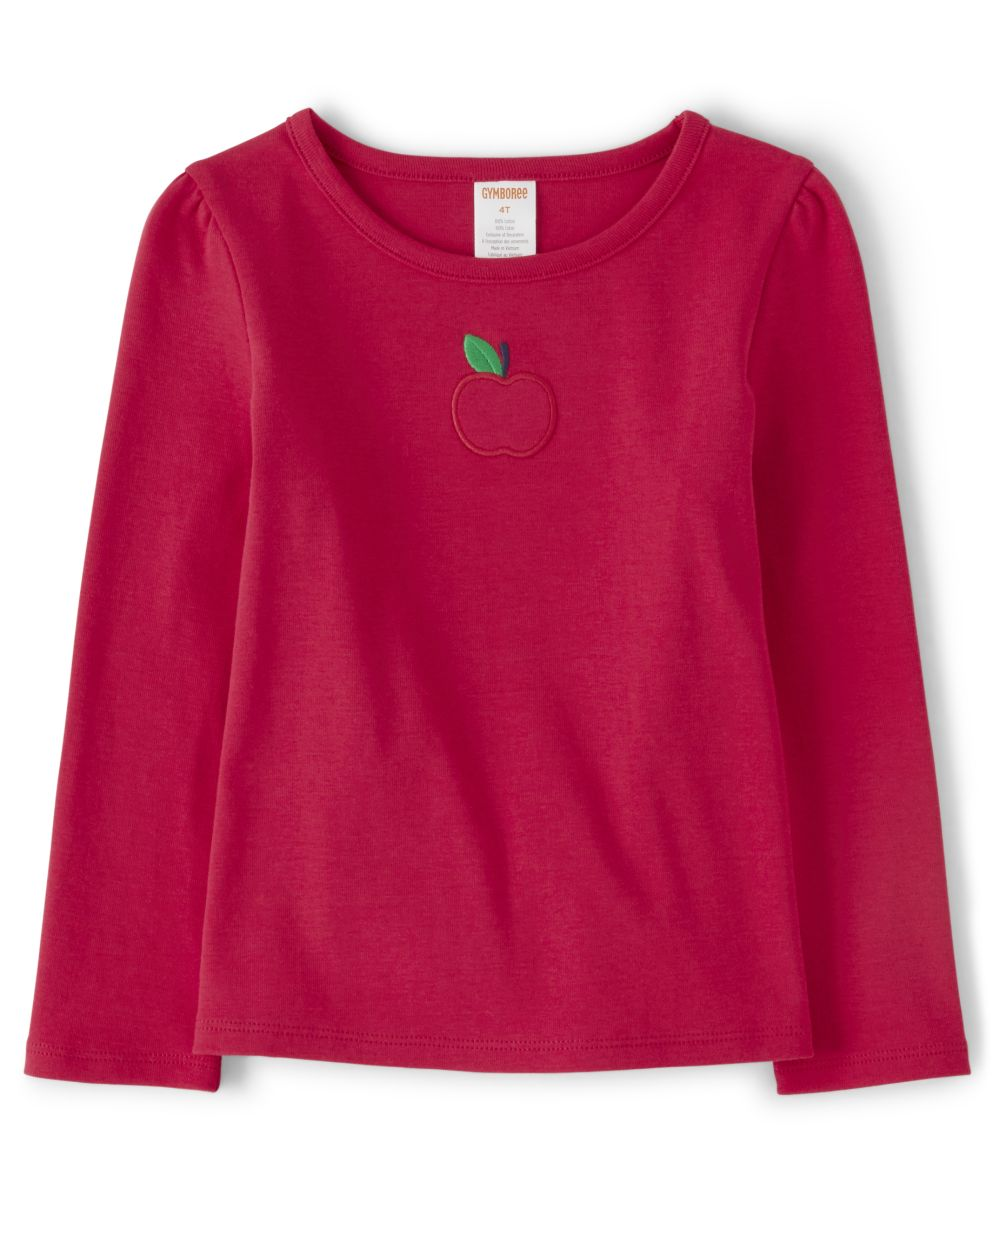 Girls Embroidered Top - Candy Apple